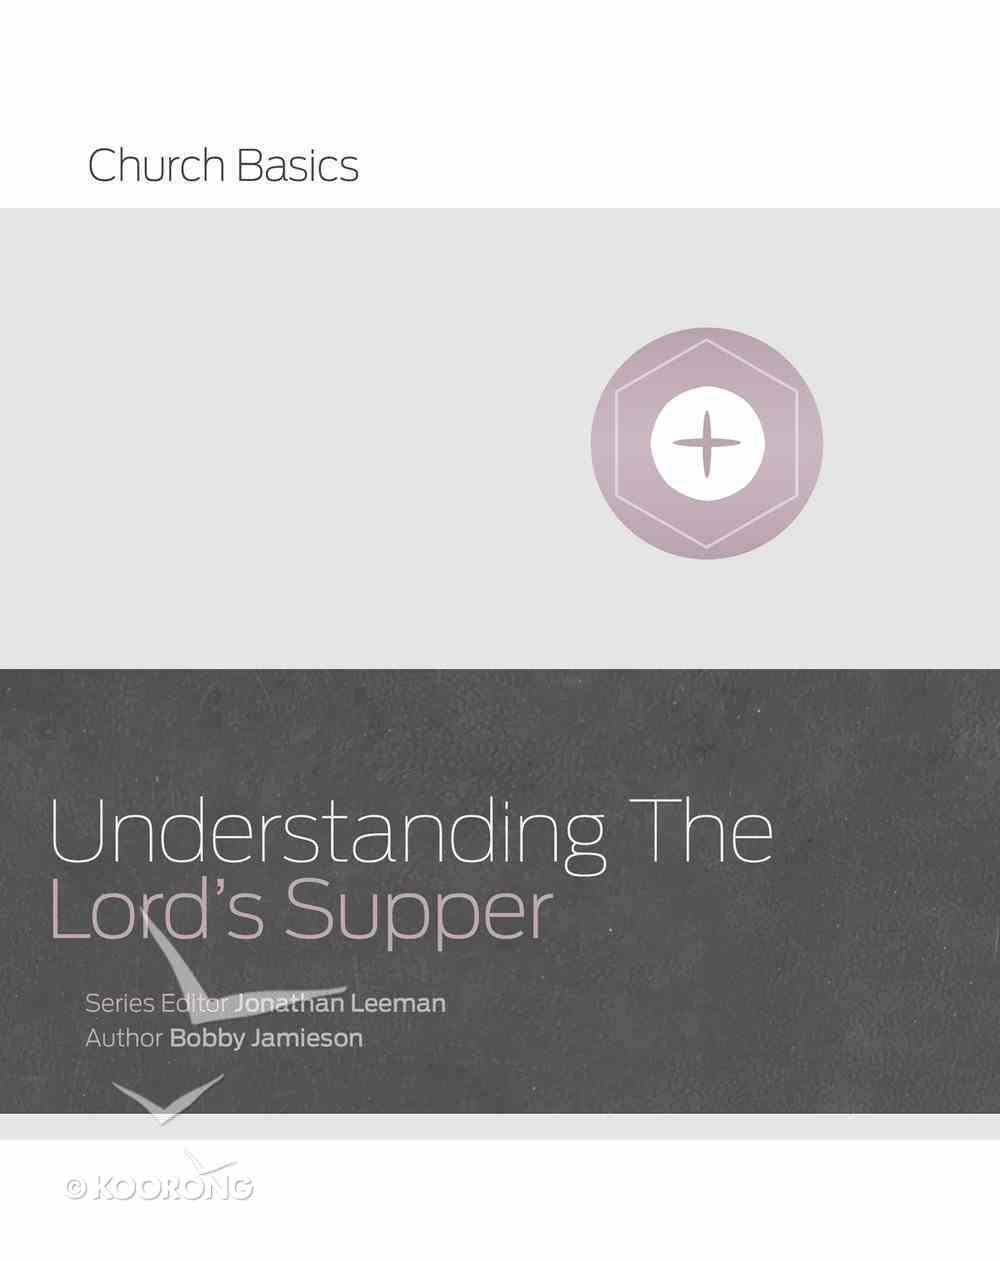 Understanding the Lord's Supper (Church Basics Series) eBook